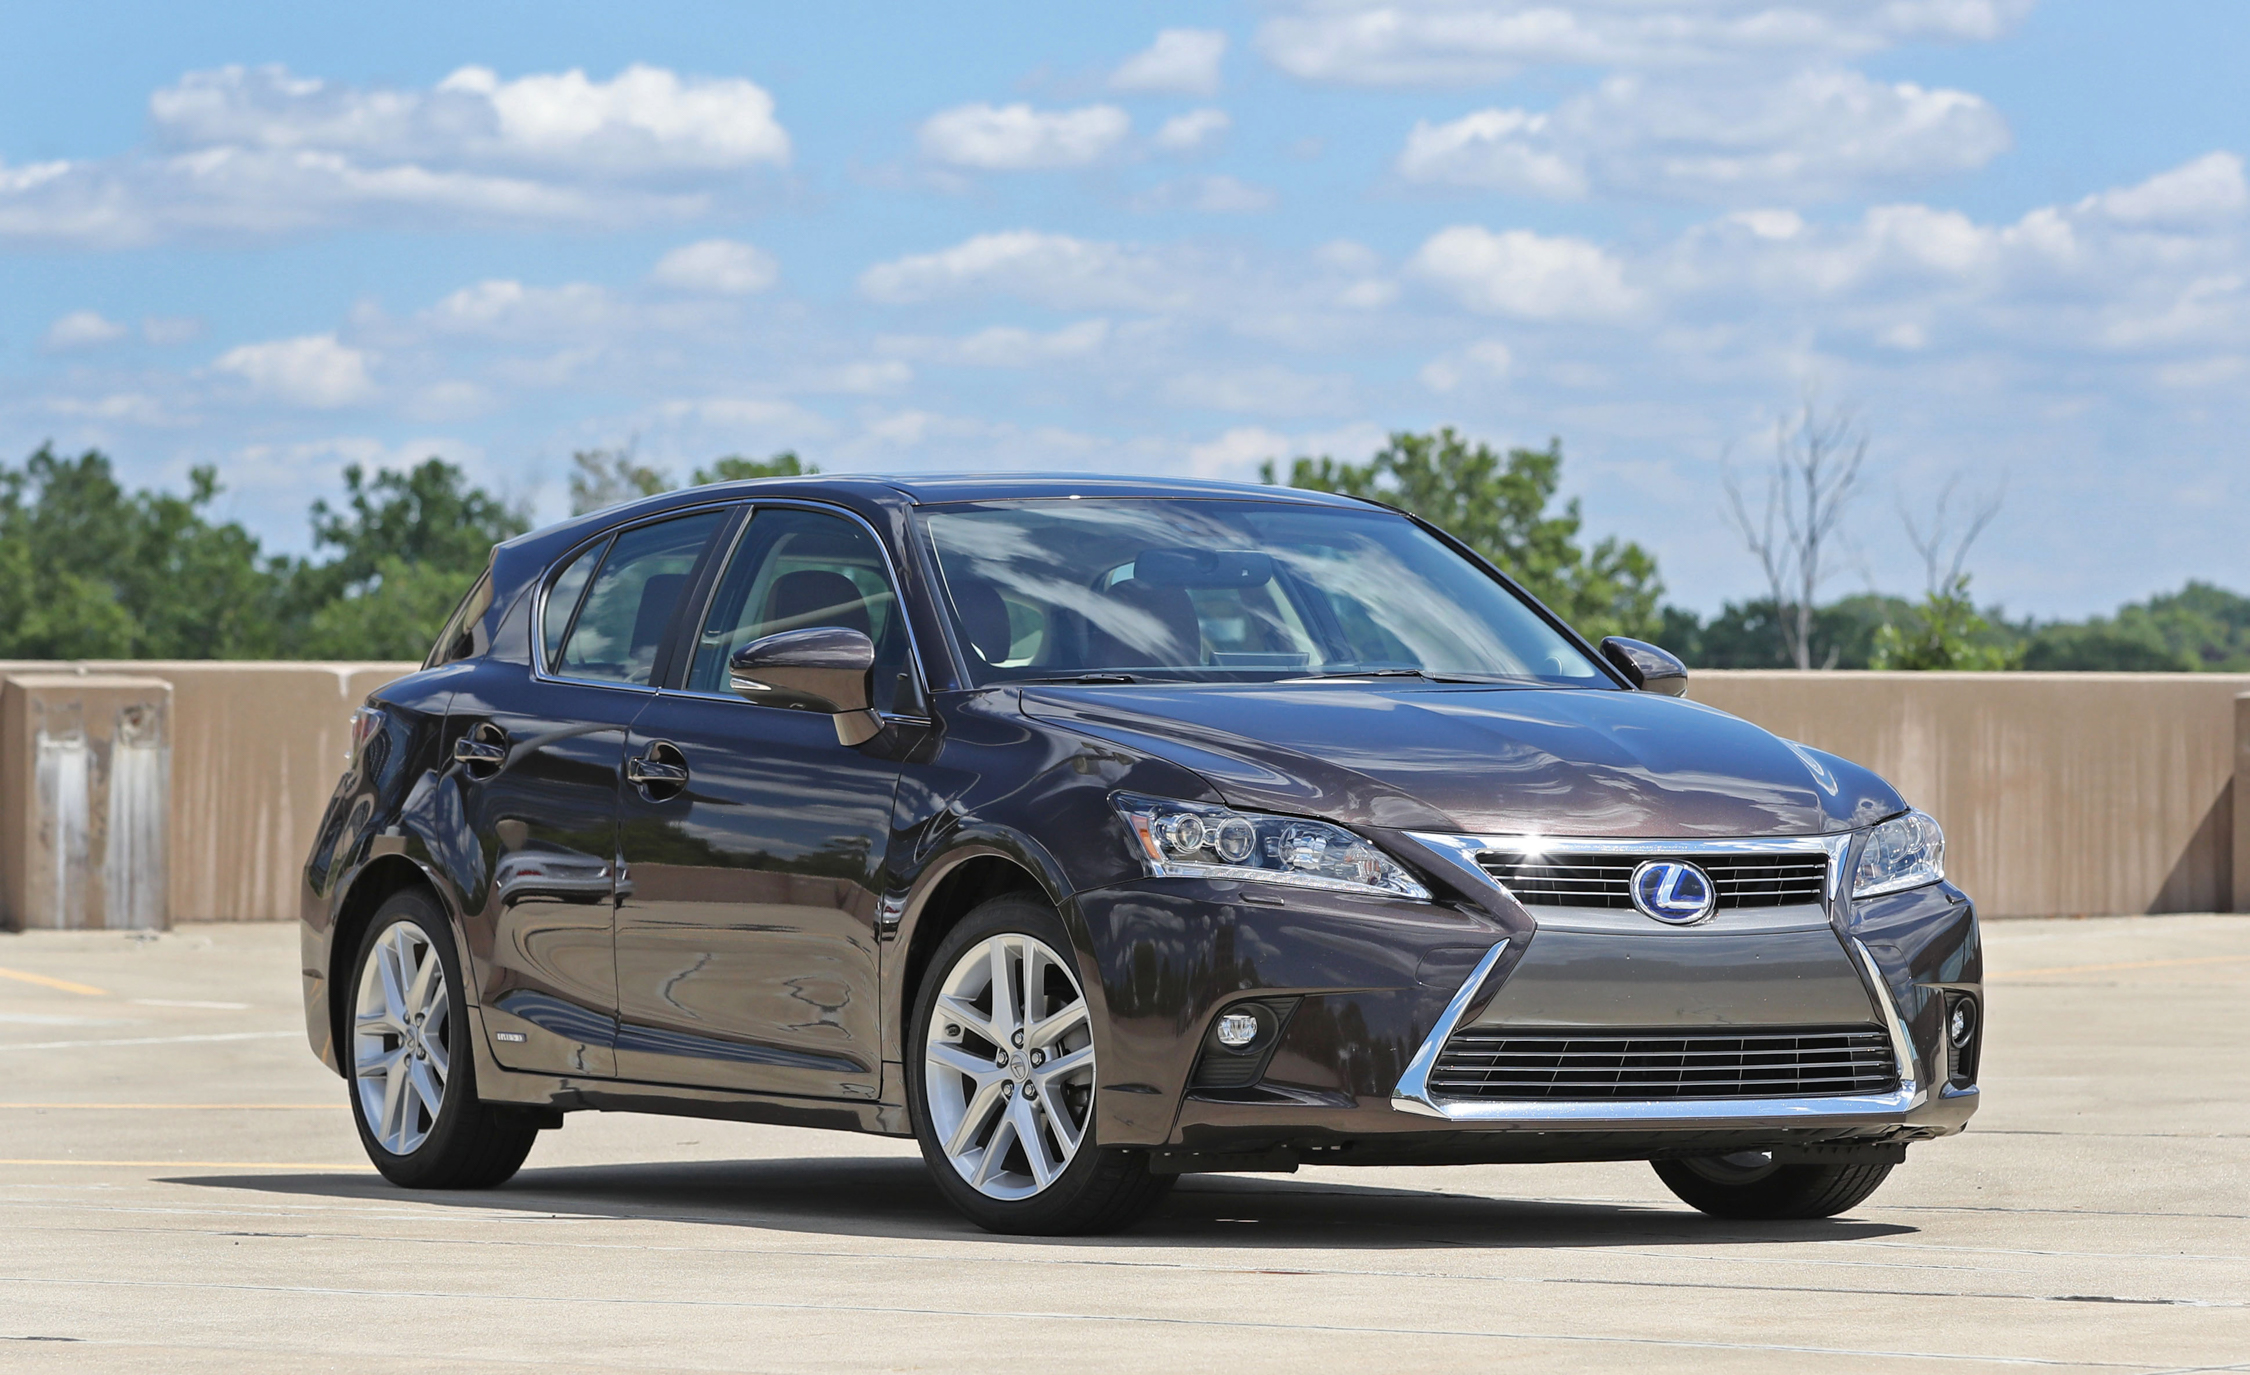 2016 Lexus CT200h (View 10 of 29)